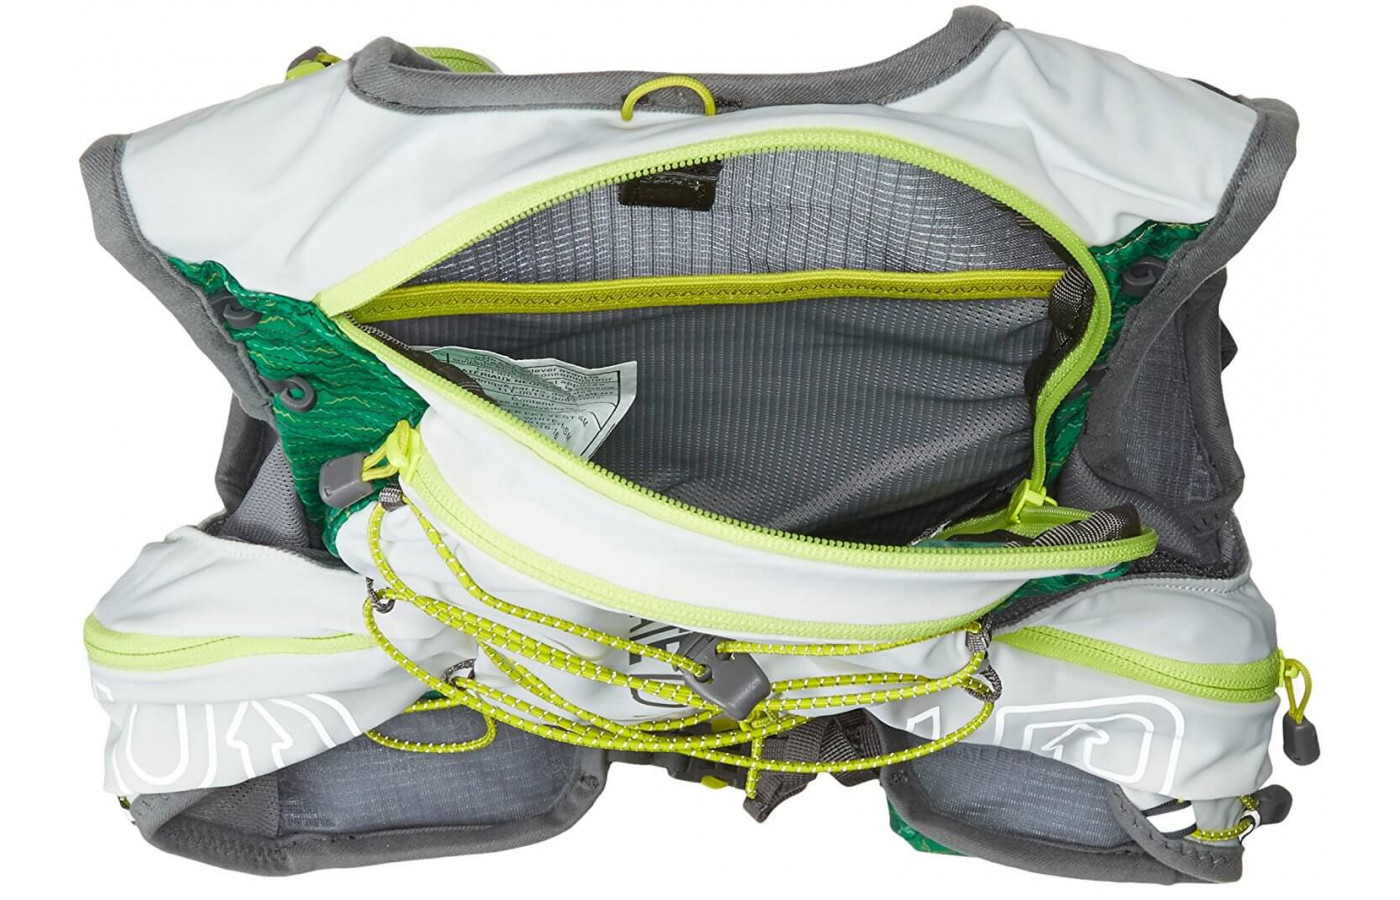 The Ultimate Direction Jurek FKT Vest features a bungee system to help reduce bounce